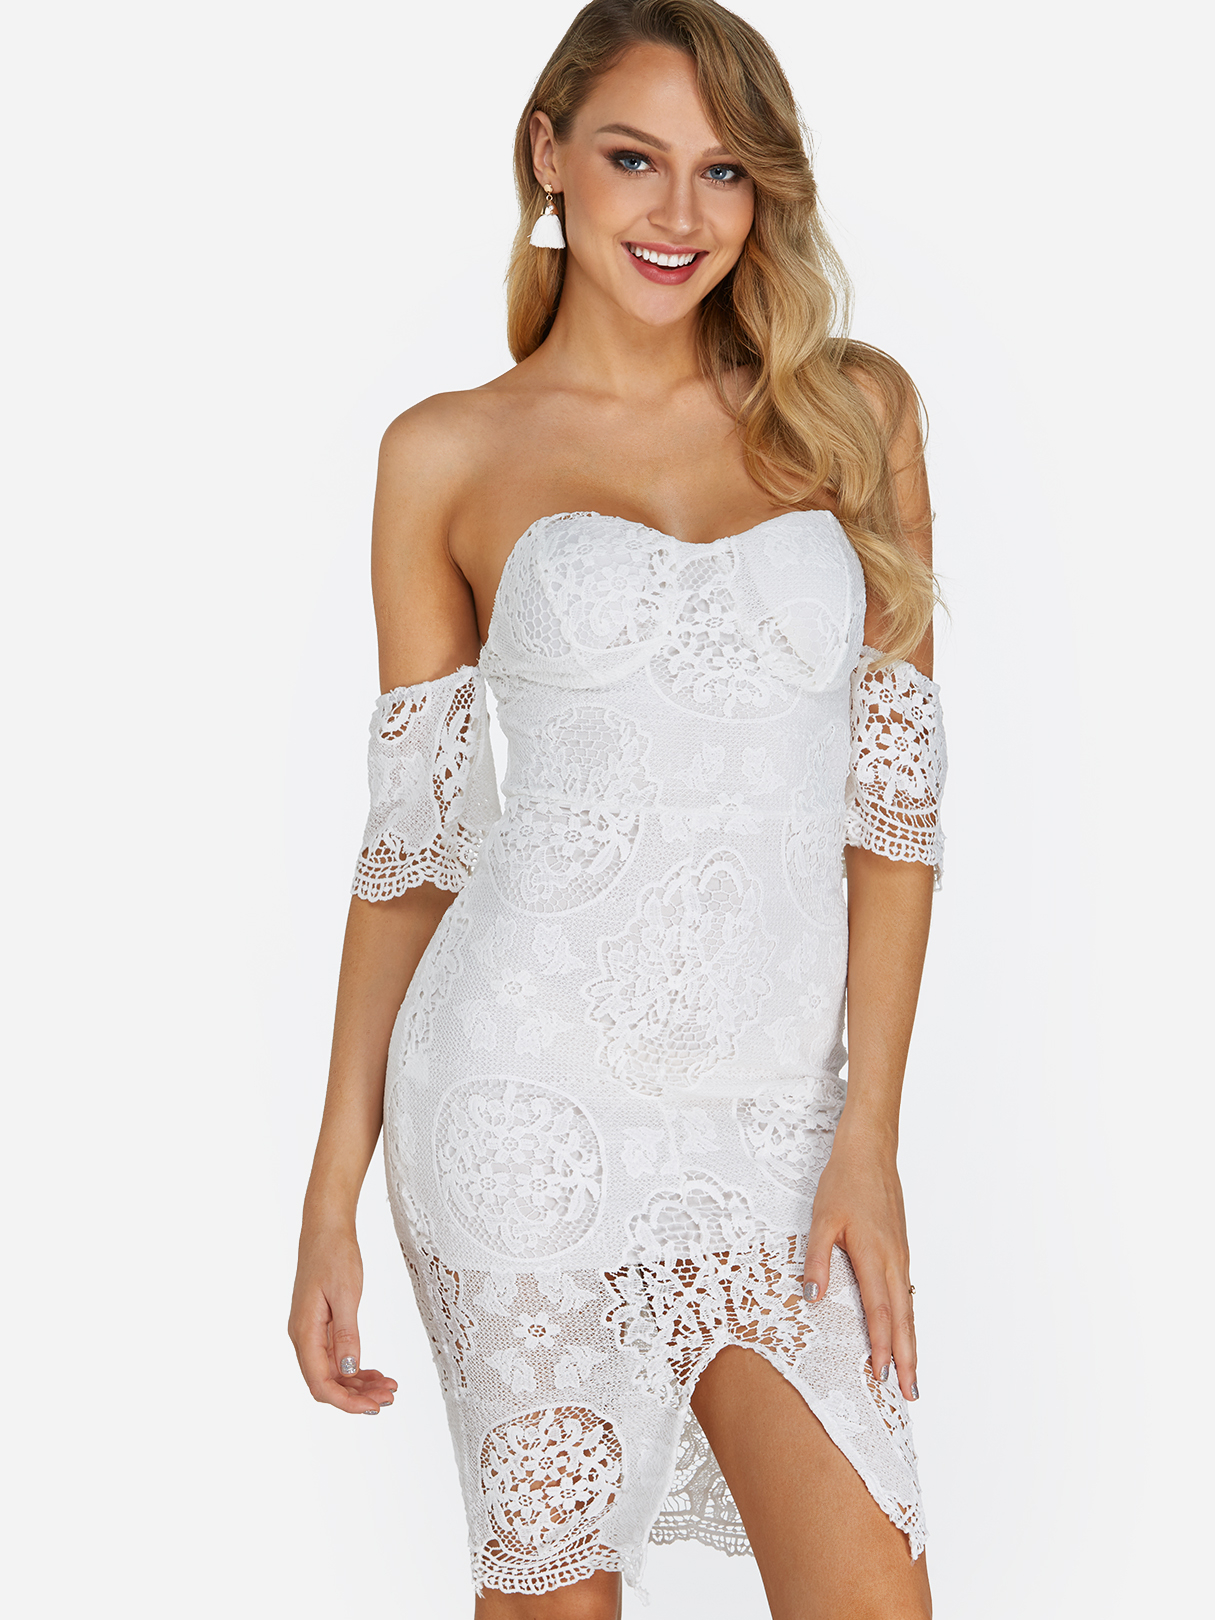 White Lace Details Backless Off The Shoulder Short Sleeves Slit Hem Dress